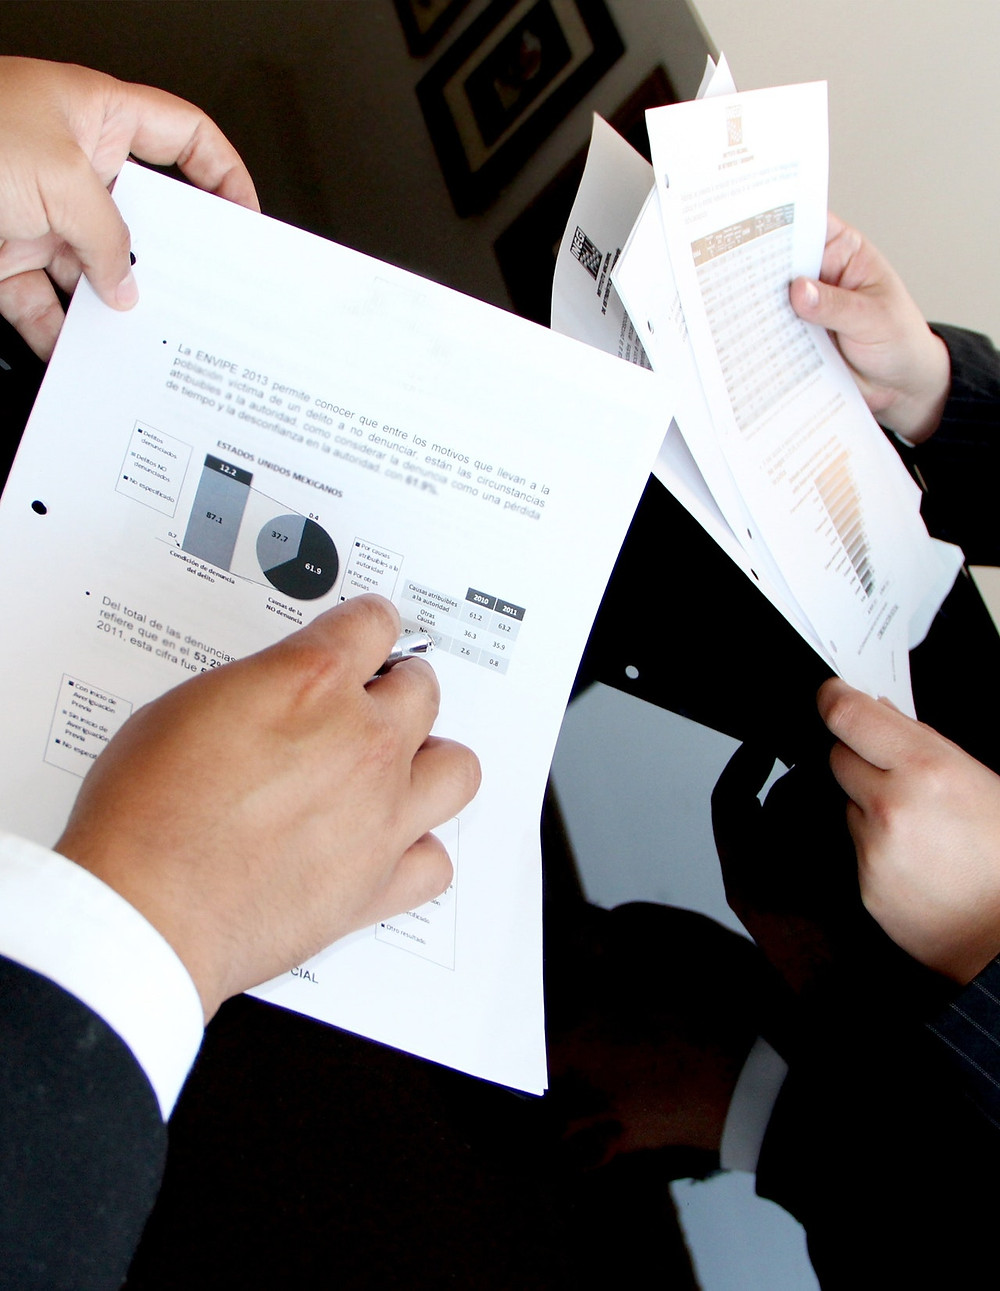 Two colleagues showing paperwork to each other